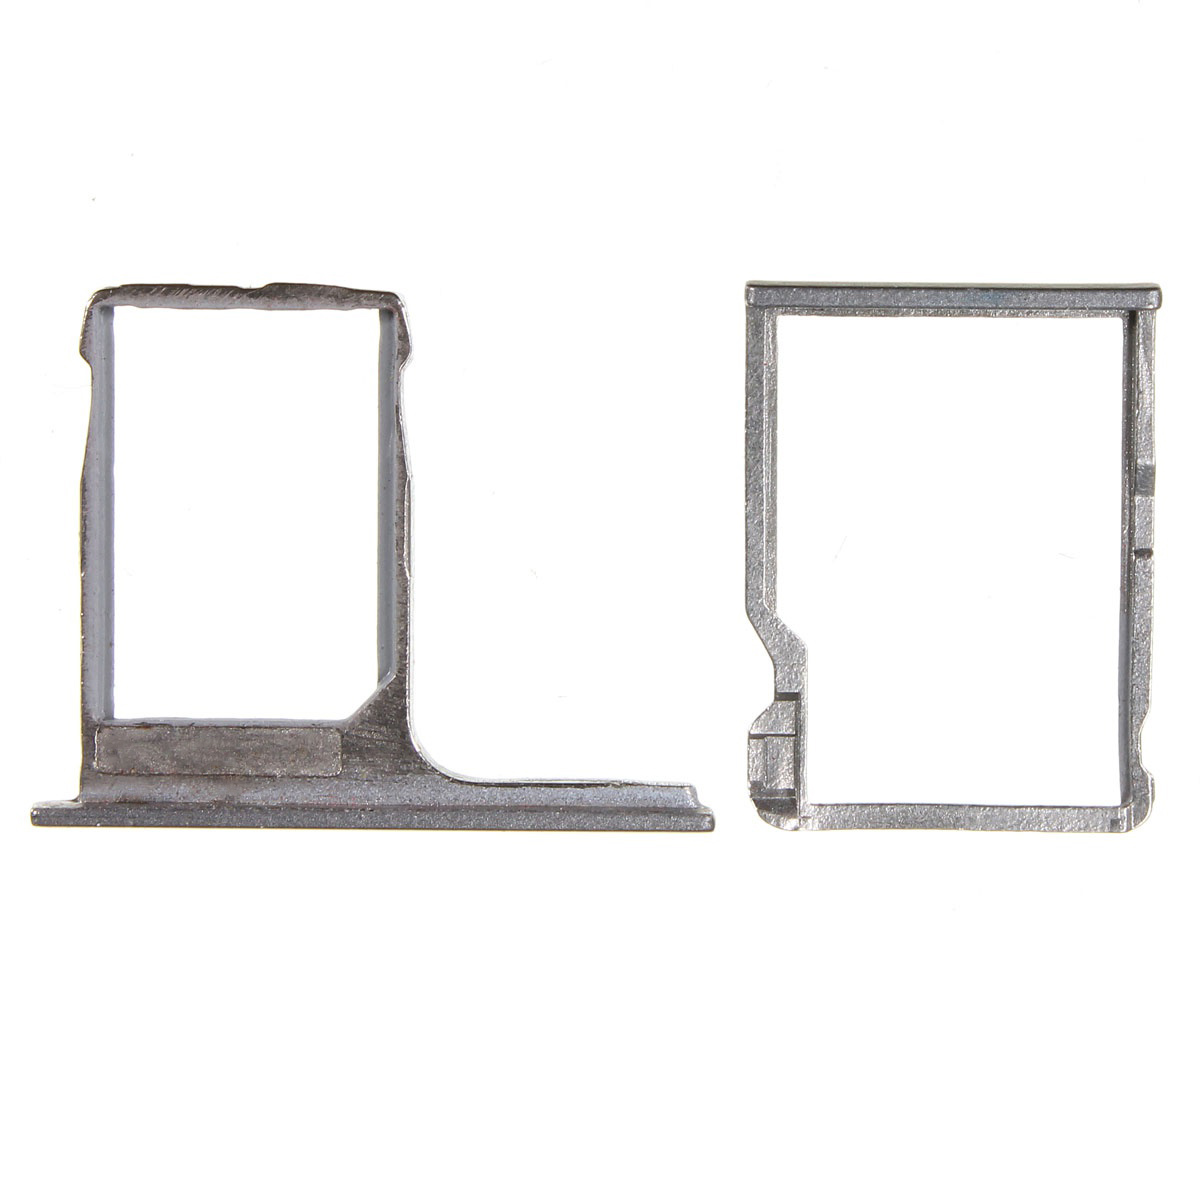 BEST SHOPPER SIM Card Socket Tray Slot Holder Adapter Replacement Part Compatible with HTC One M8 Gray